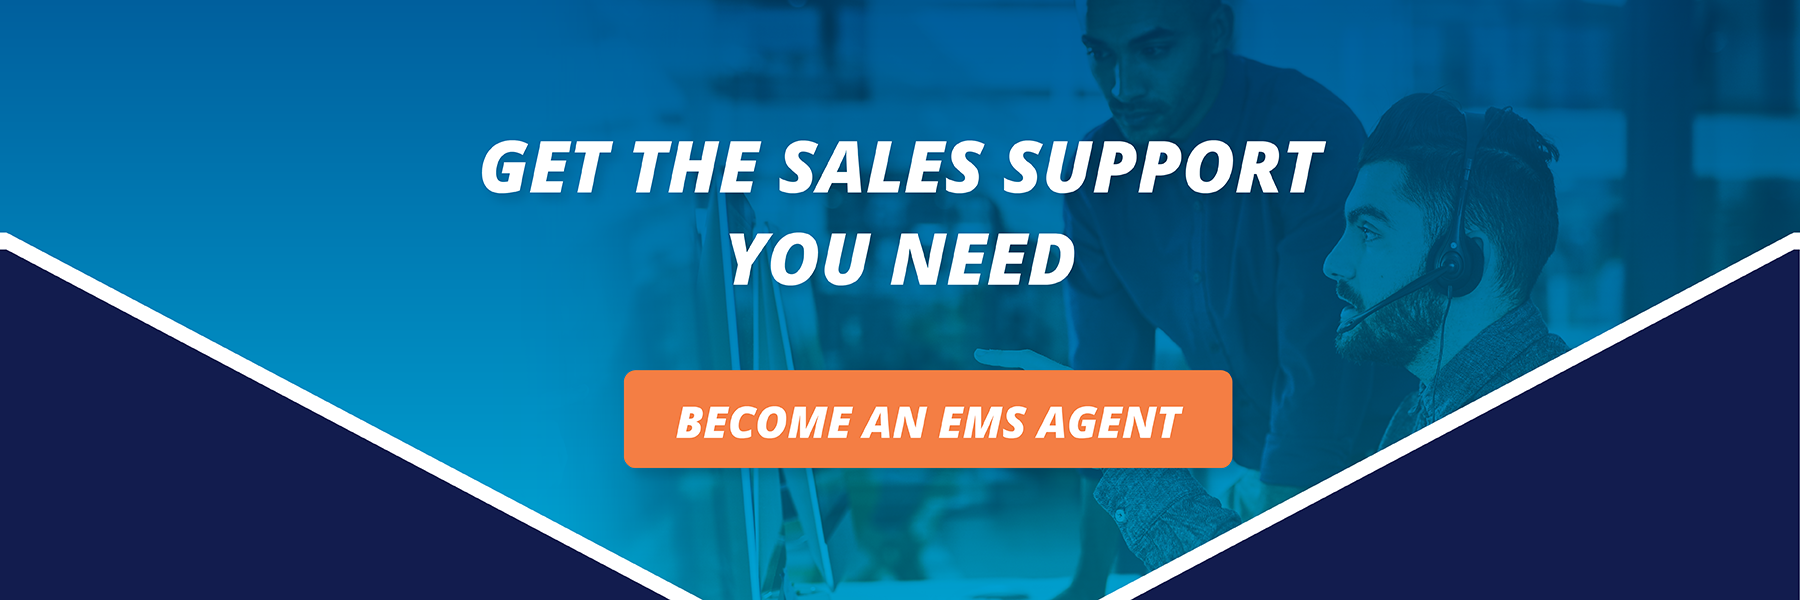 Get the Sales Support You Need